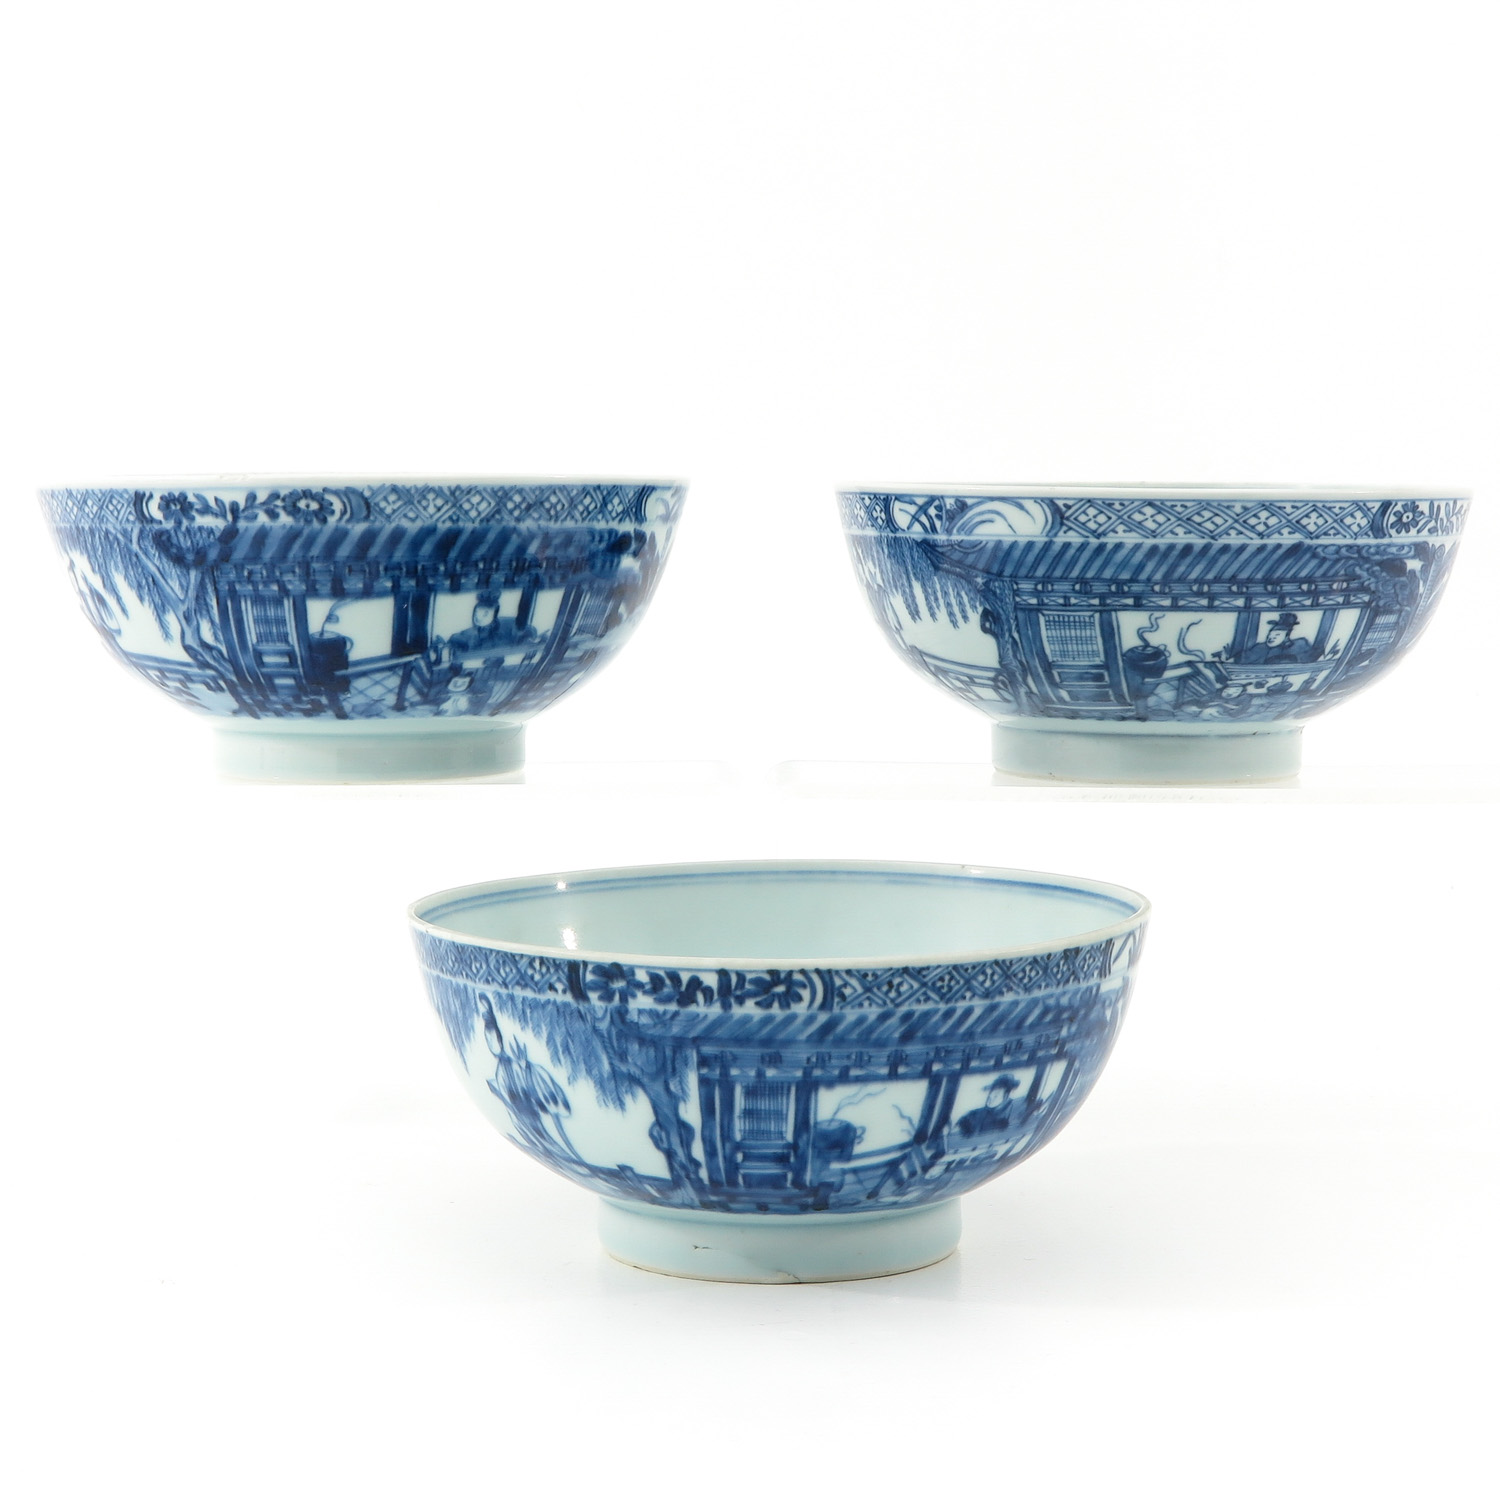 A Series of 3 Blue and White Bowls - Image 2 of 10